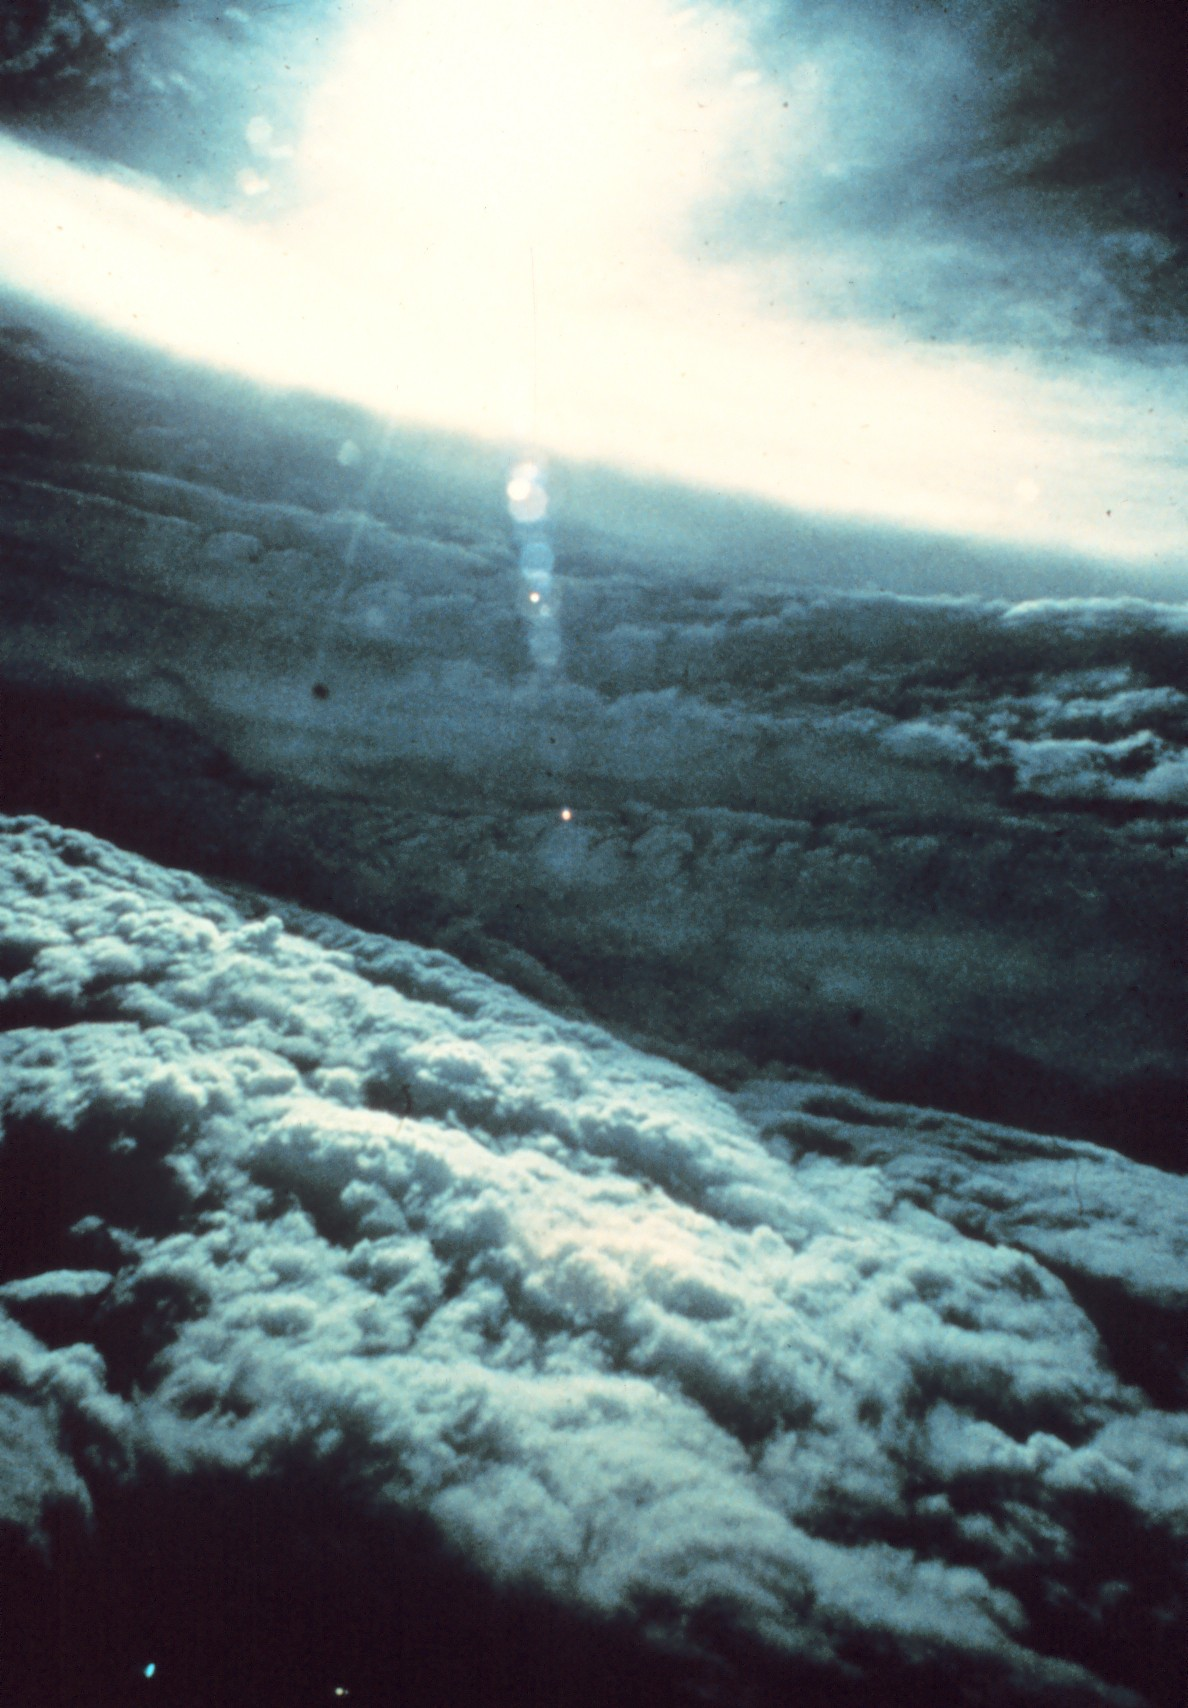 The eyewall of  Hurricane Beulah as seen from a NOAA stormchaser, 1963. Hurricane Beulah played waste to the East Coast of the United States in 1963, leading to the first in a series of government-funded attempts to influence or control the weather.